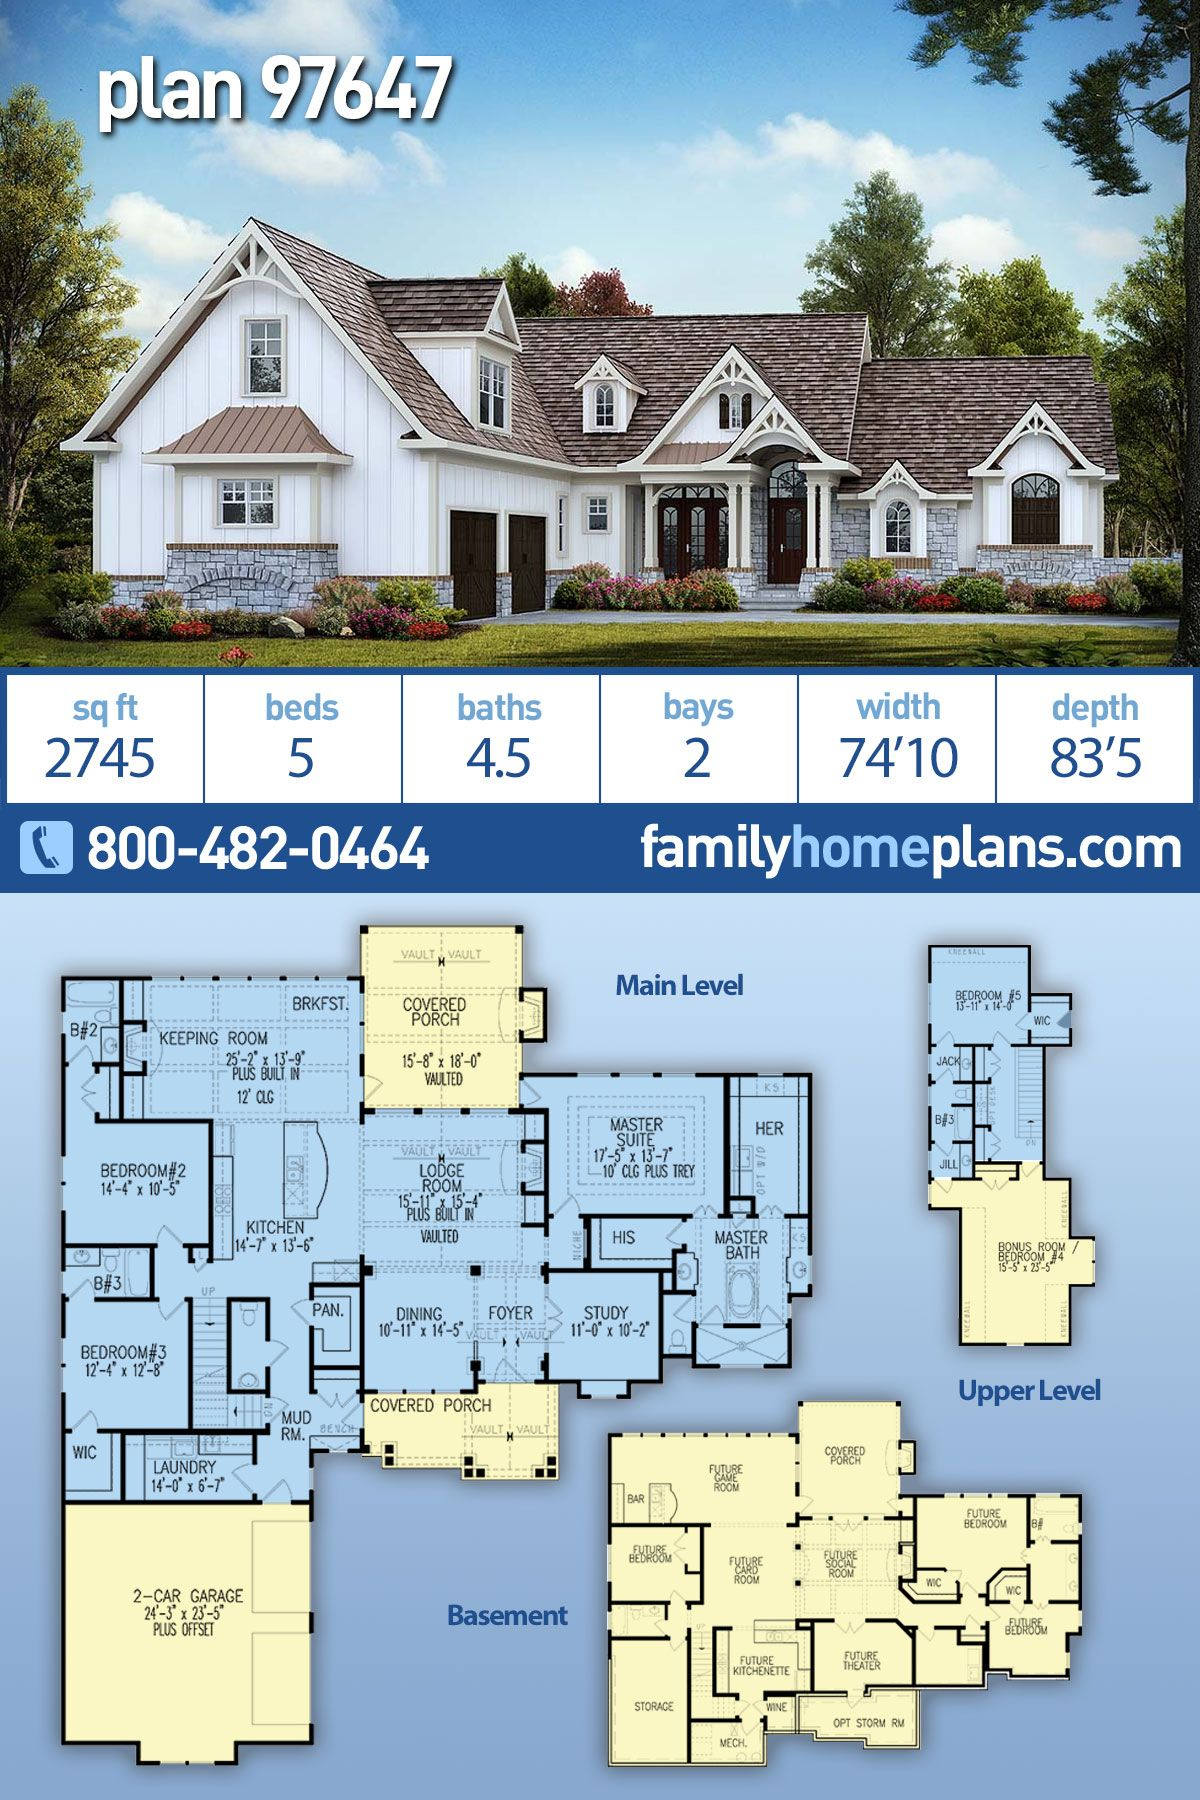 Country Craftsman Style House Plan 97647 With 5 Bed 5 Bath 2